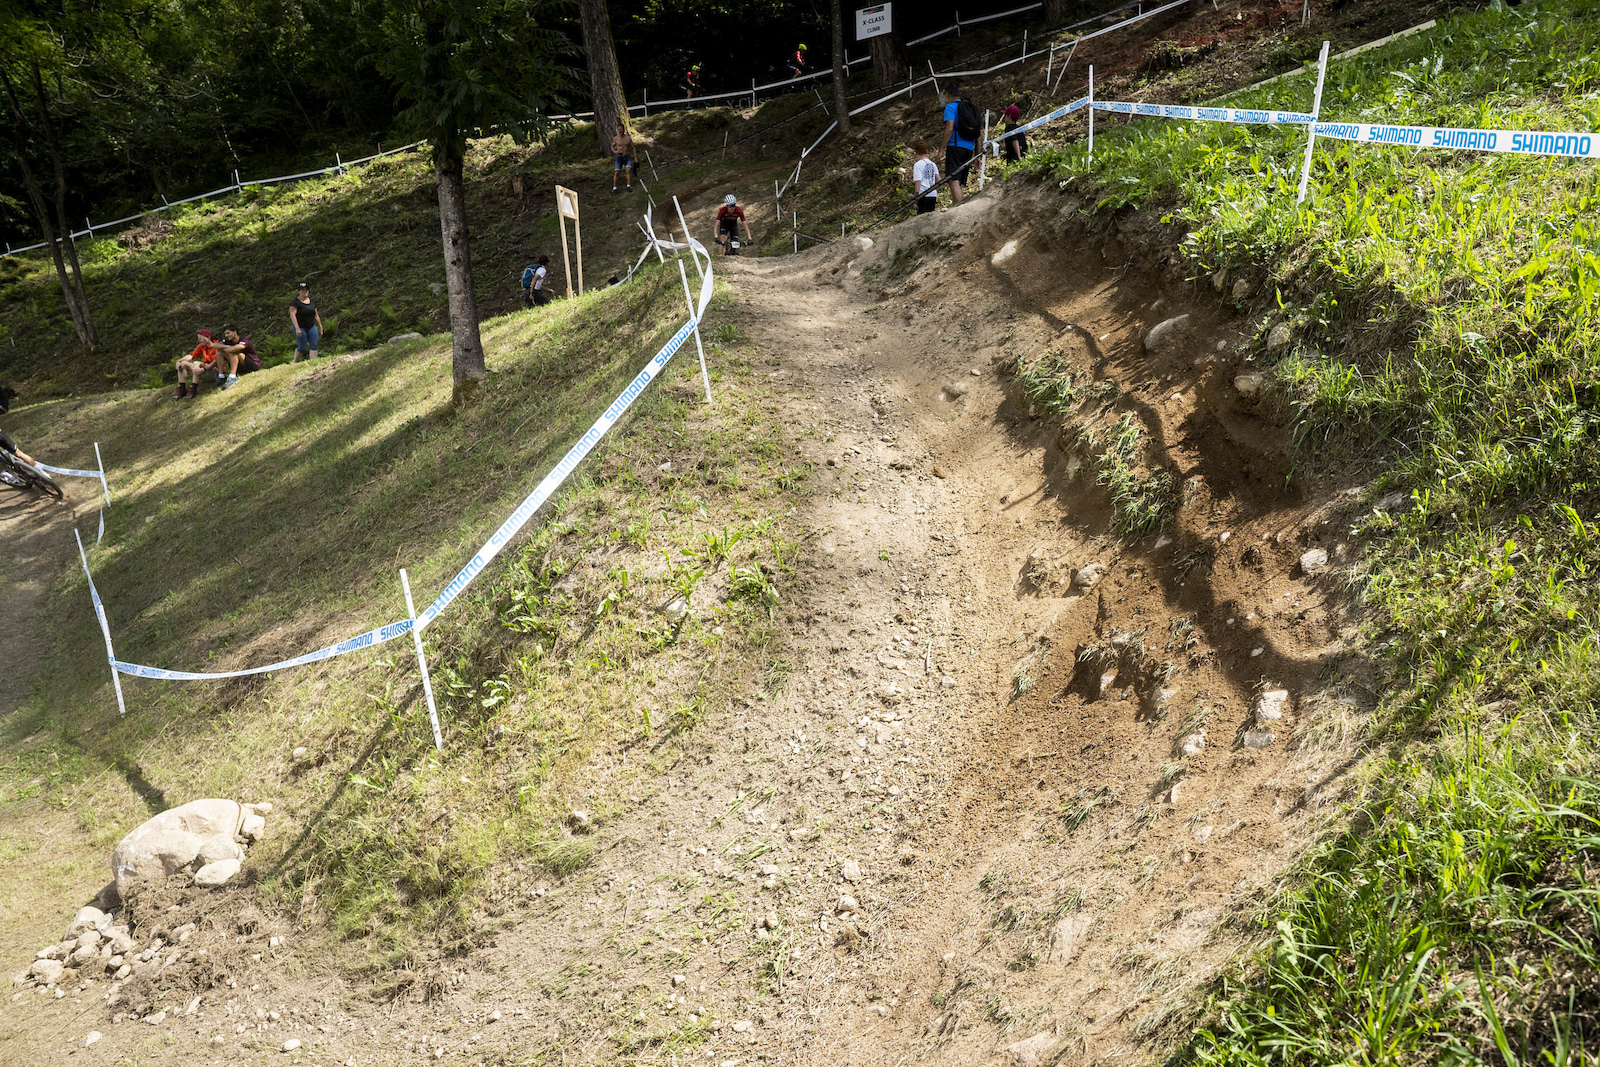 There is plenty of bike park flow berms and drops out in the open.